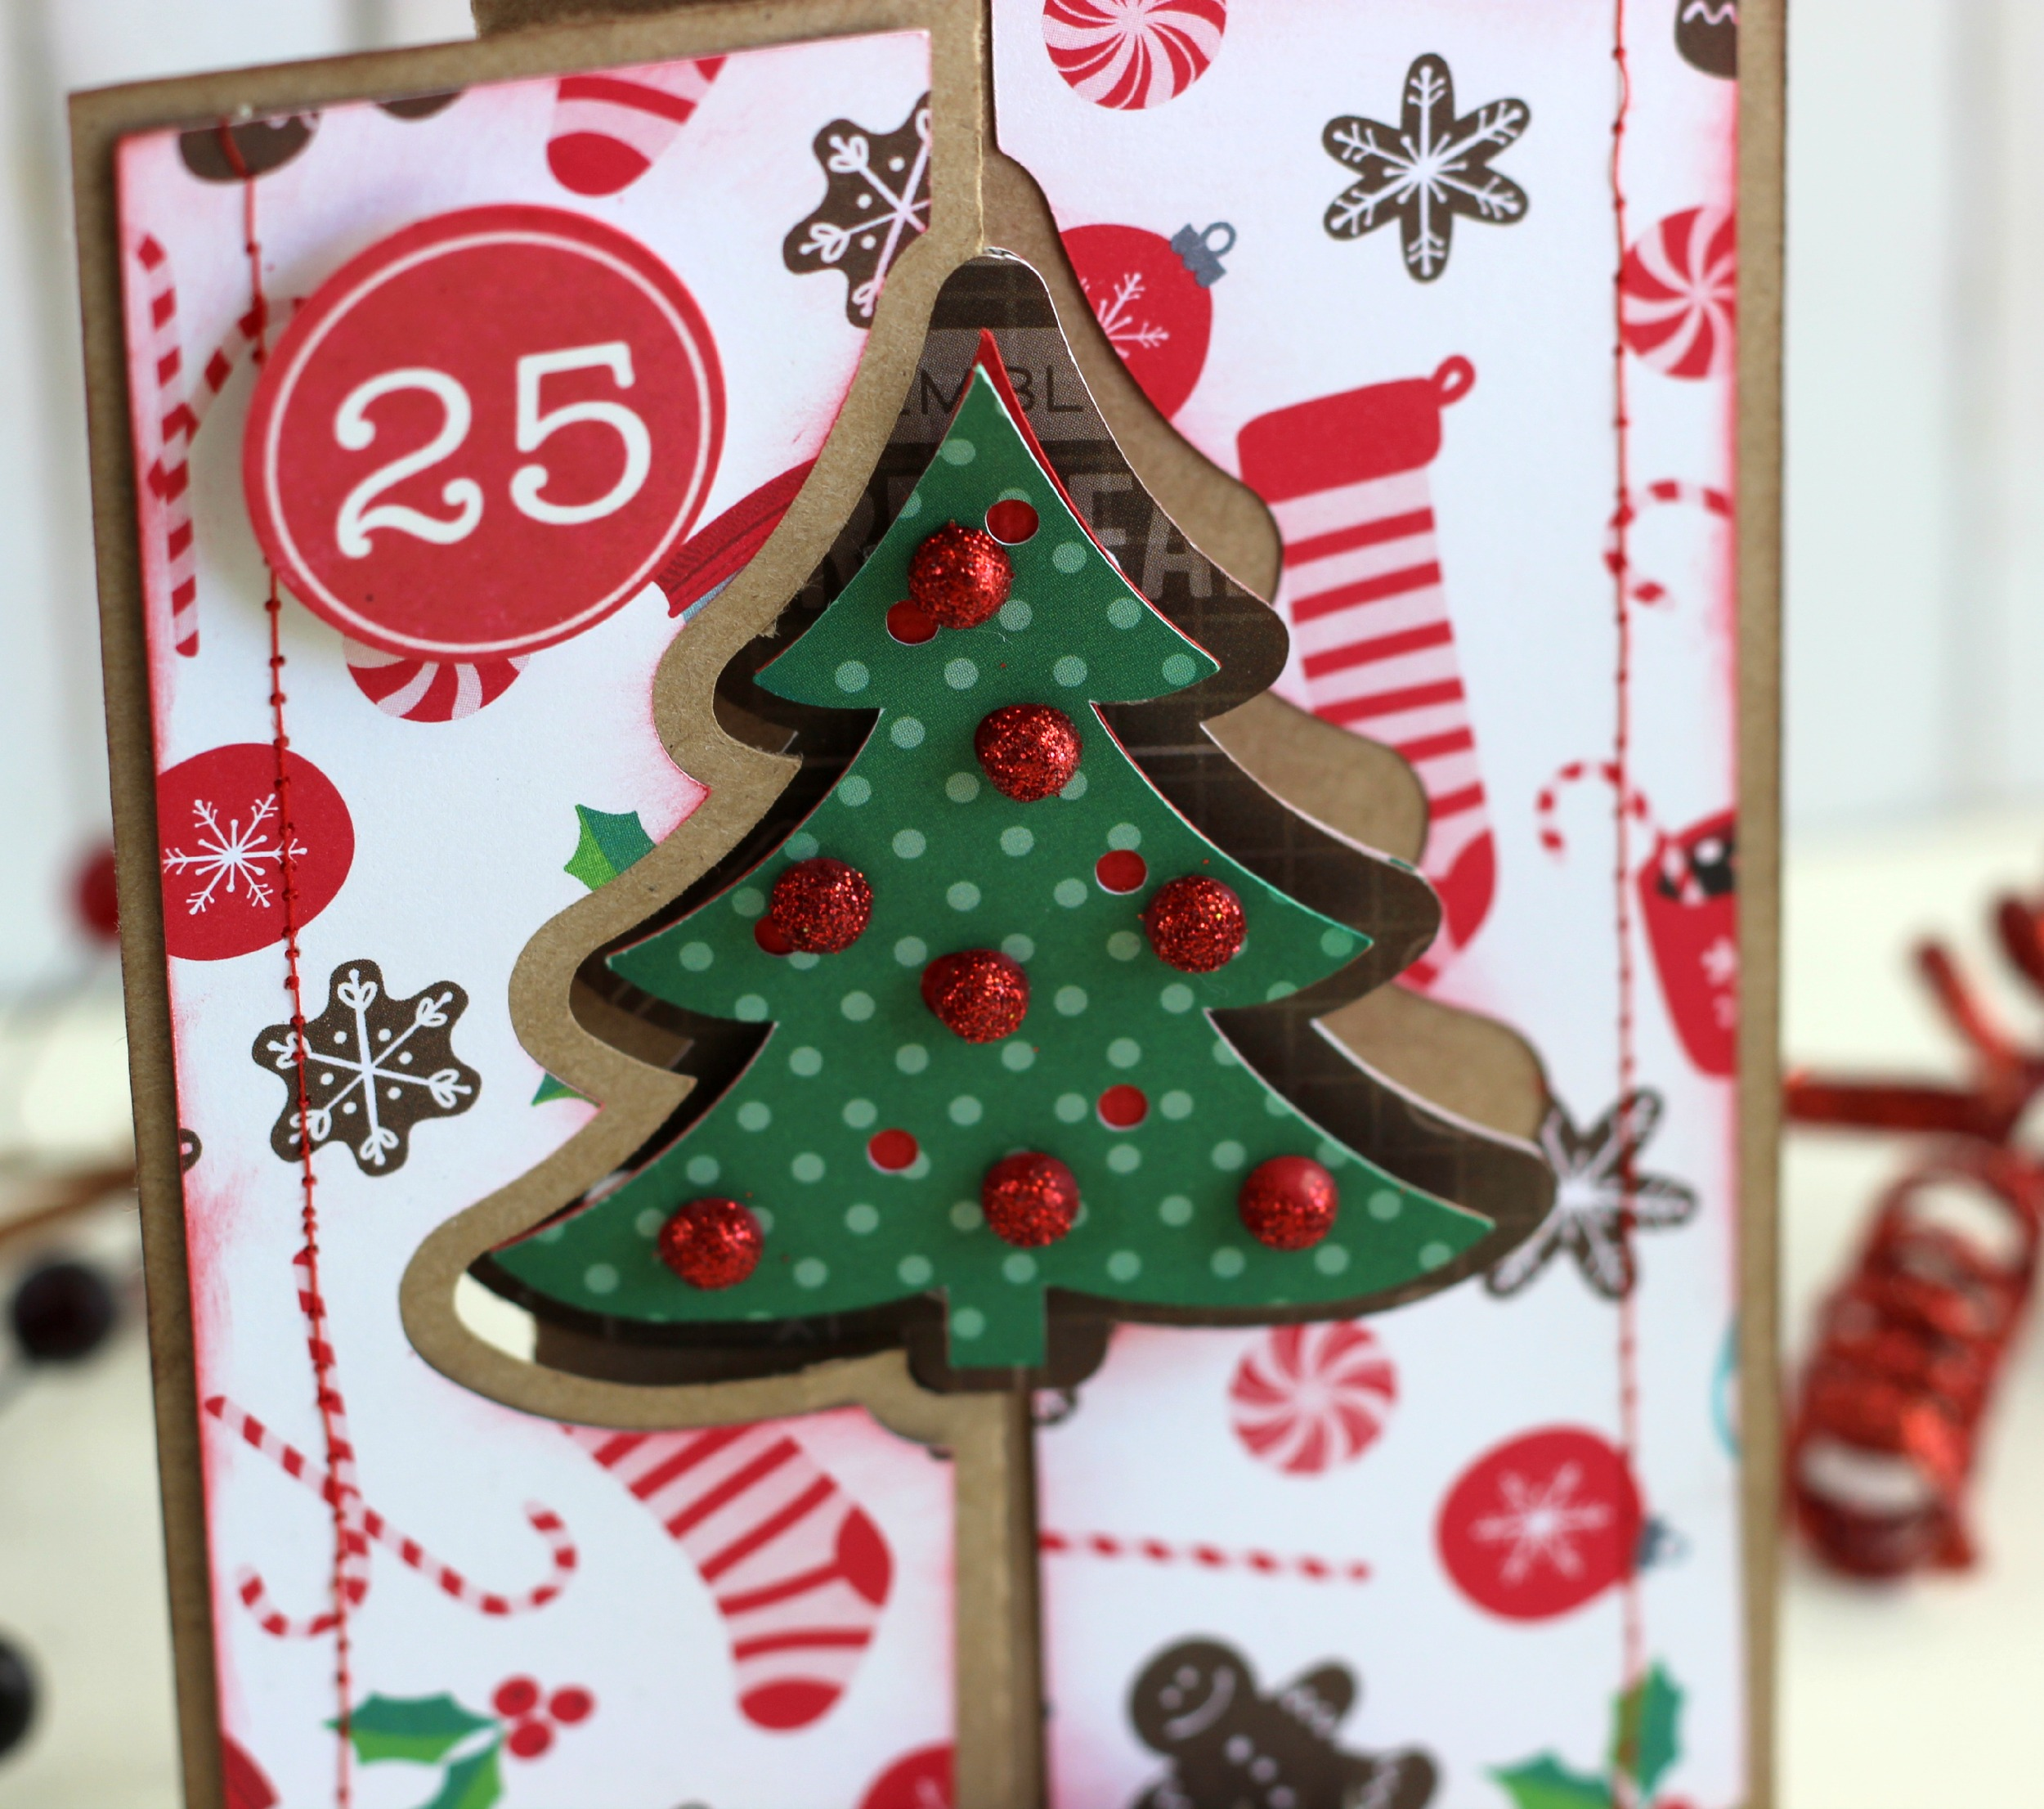 Christmas Tree Card - Pebbles, Inc.